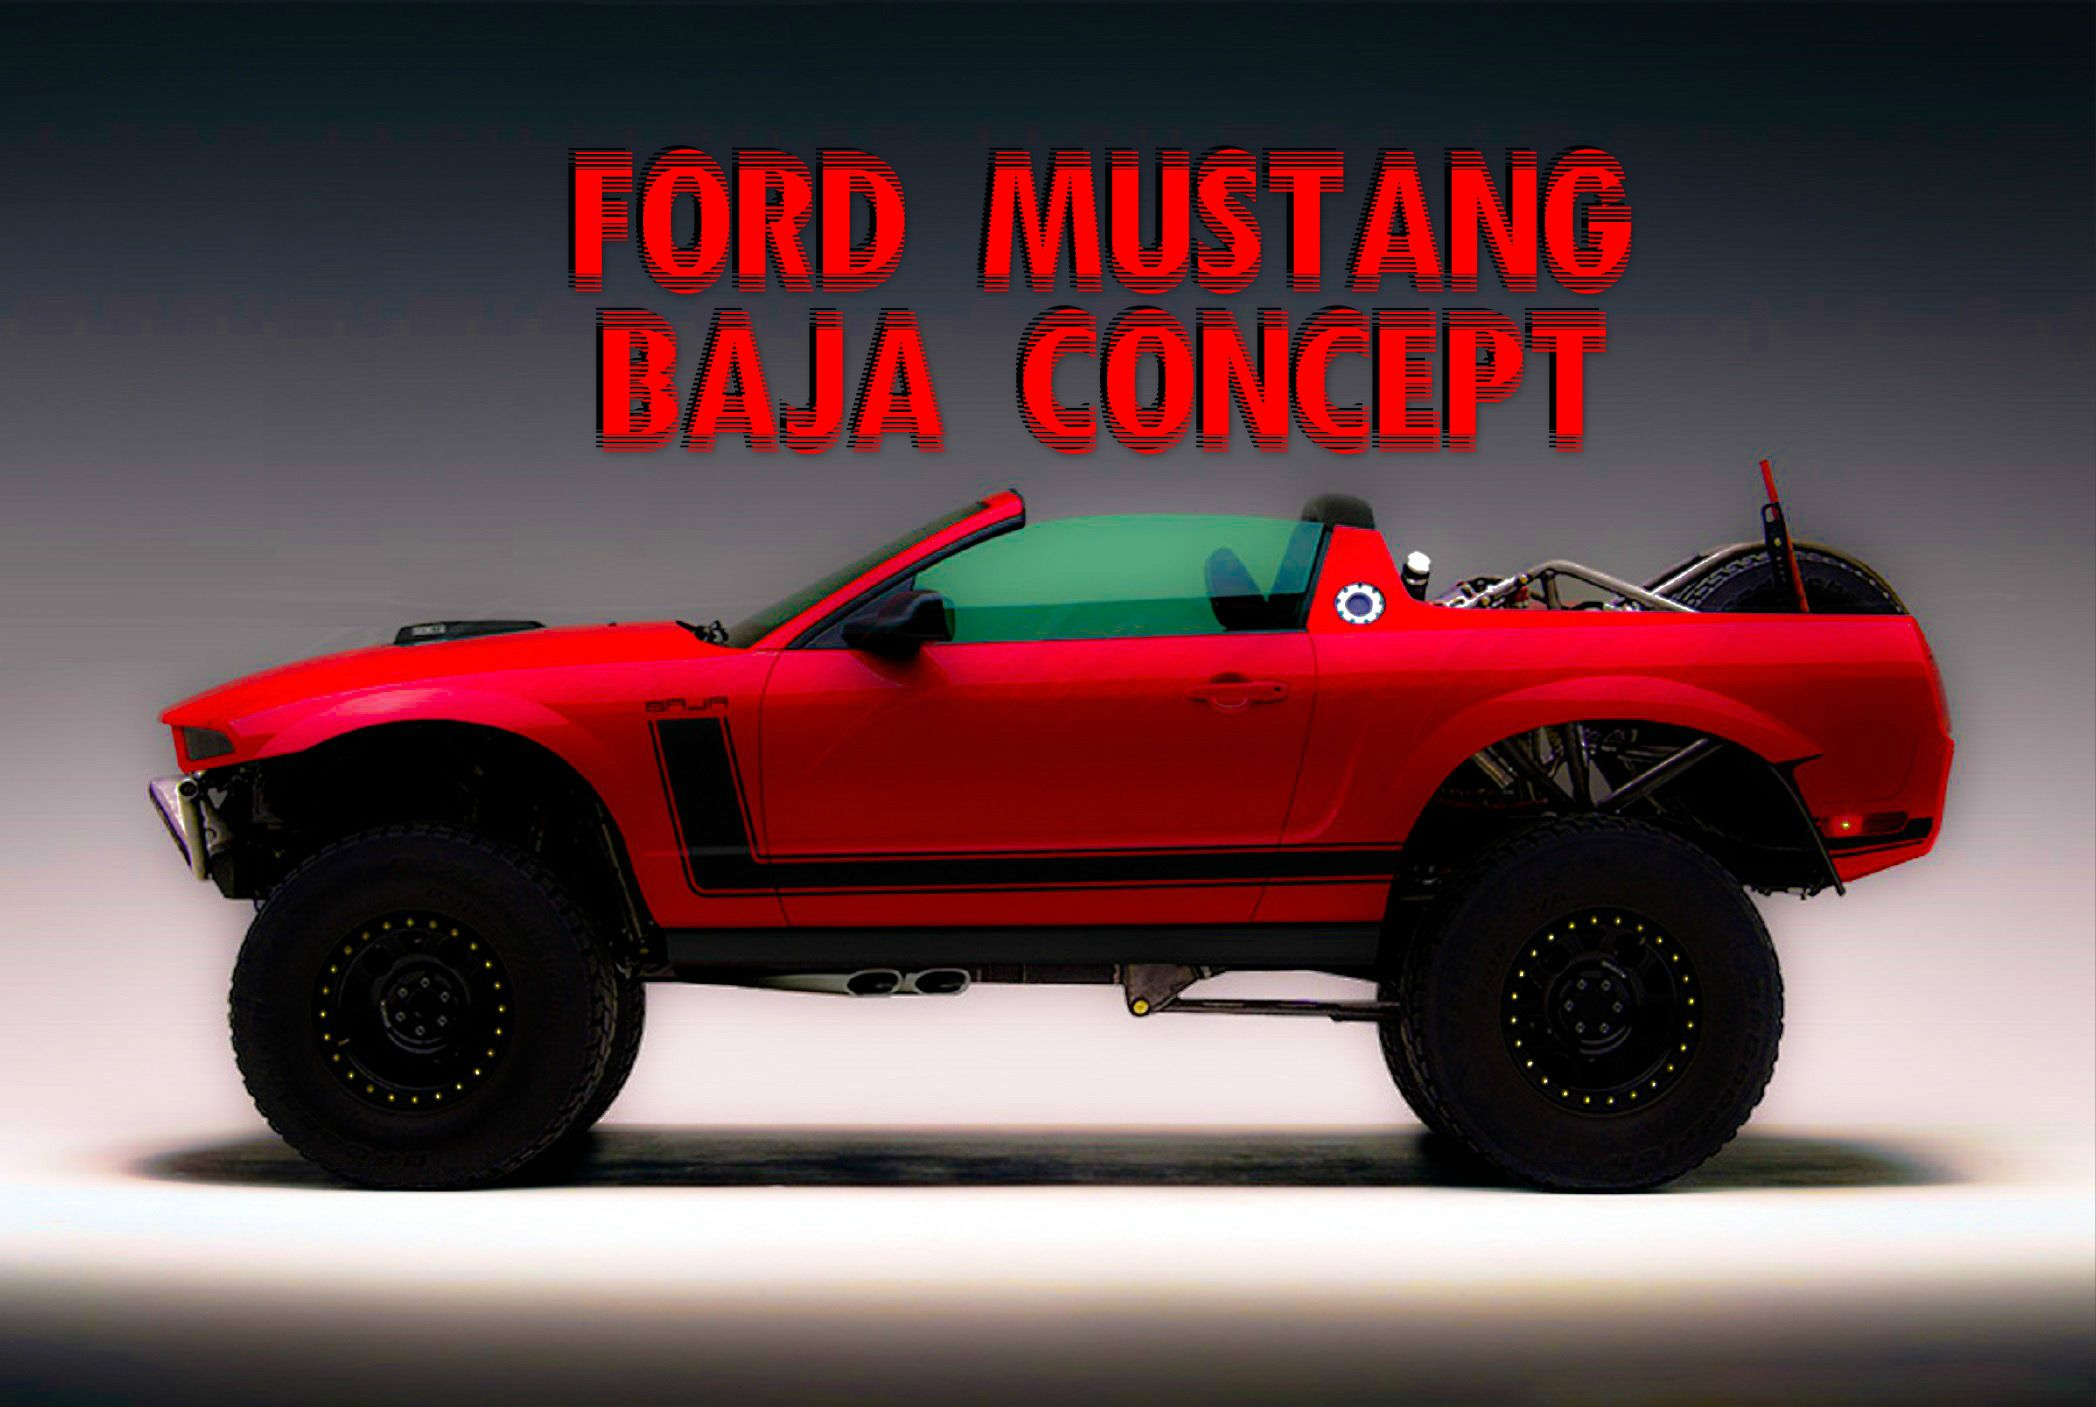 Ford Mustang Baja Concept. http://drivingline.com/articles/ford ...